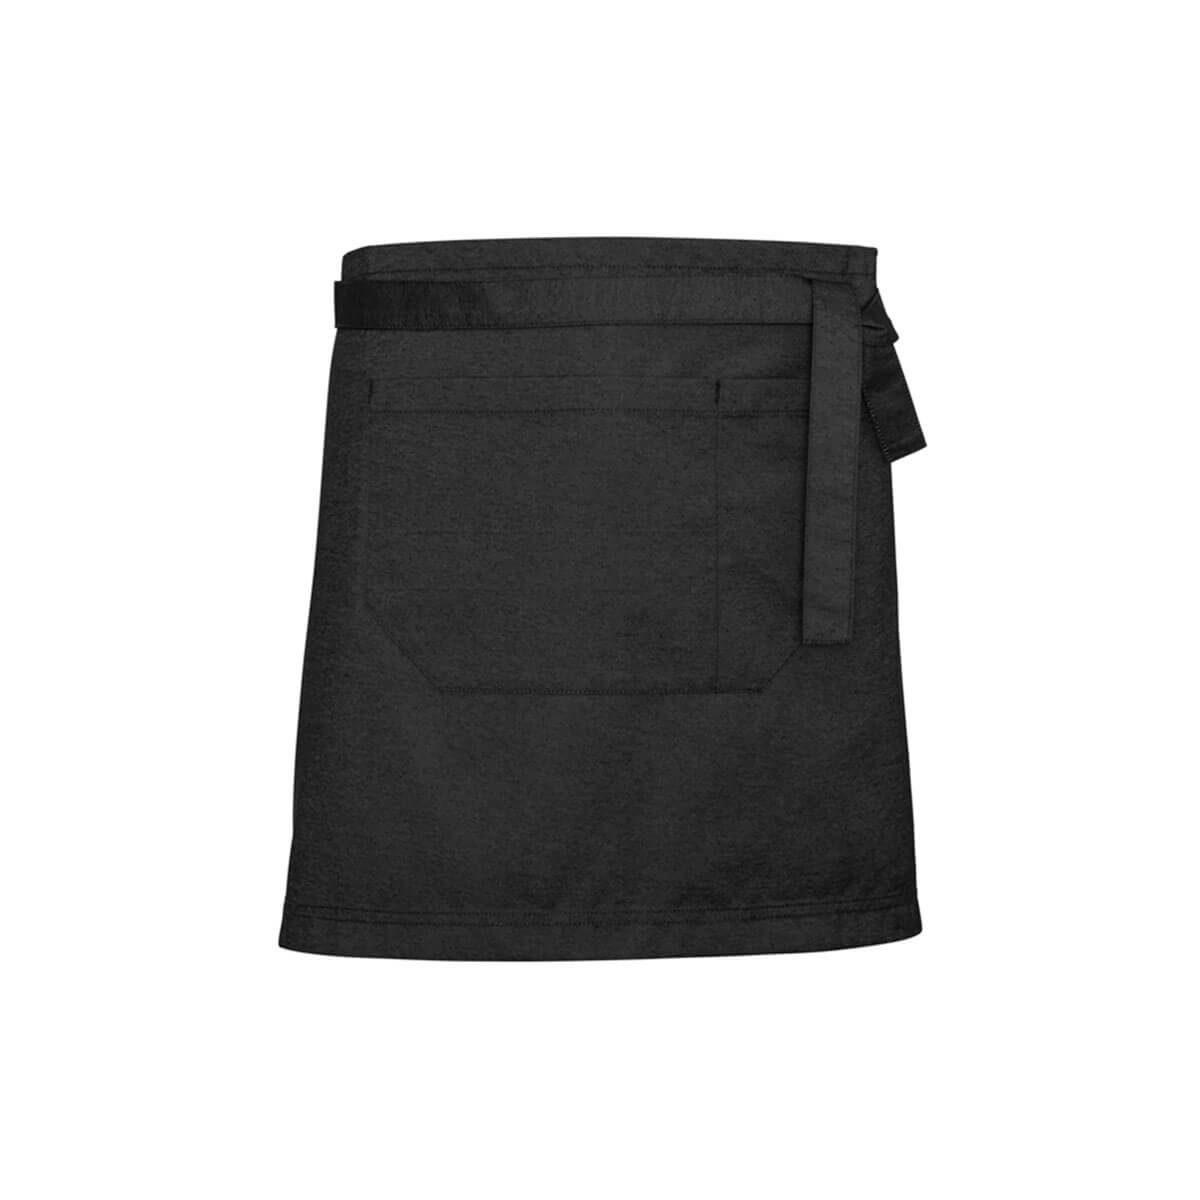 Urban 1/2 Waist Apron-Black Denim